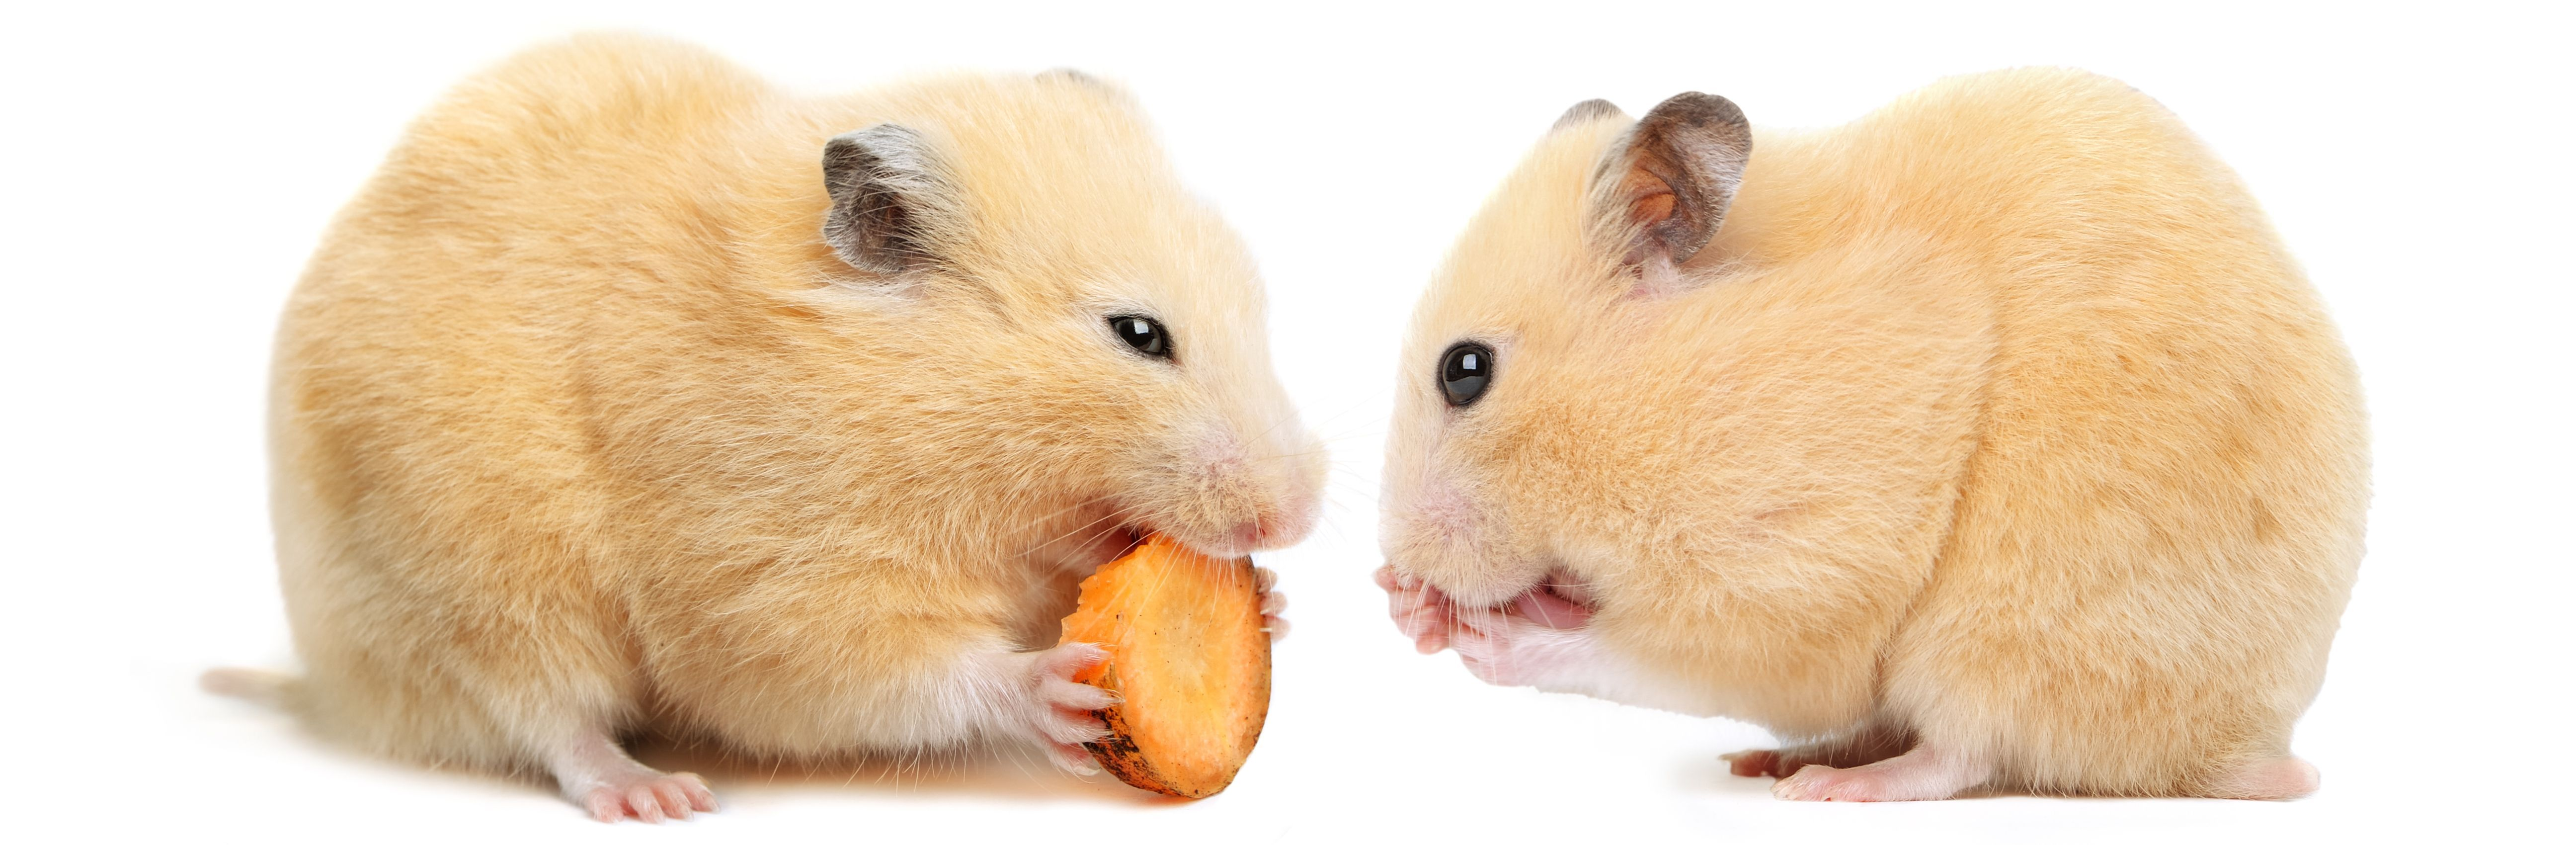 72 Cute And Funny Hamster Names For Males And Females Hamster